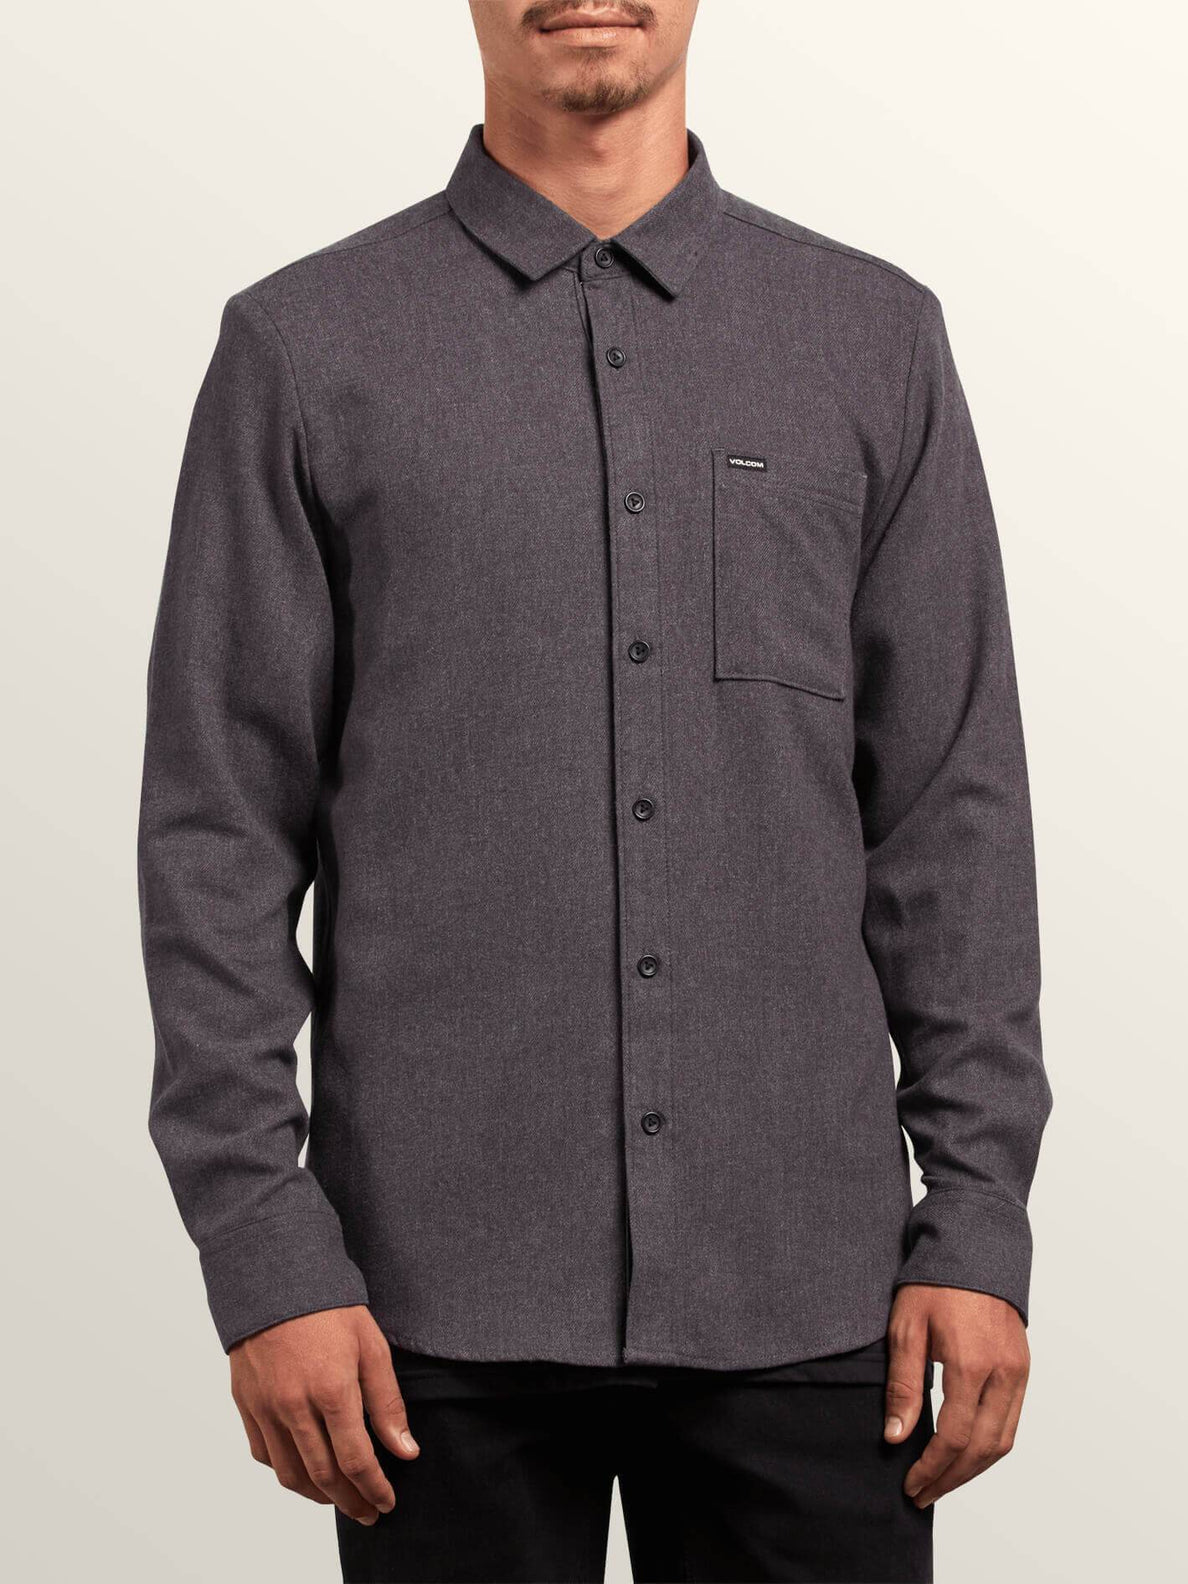 Caden Solid Long Sleeve Shirt - Asphalt Black